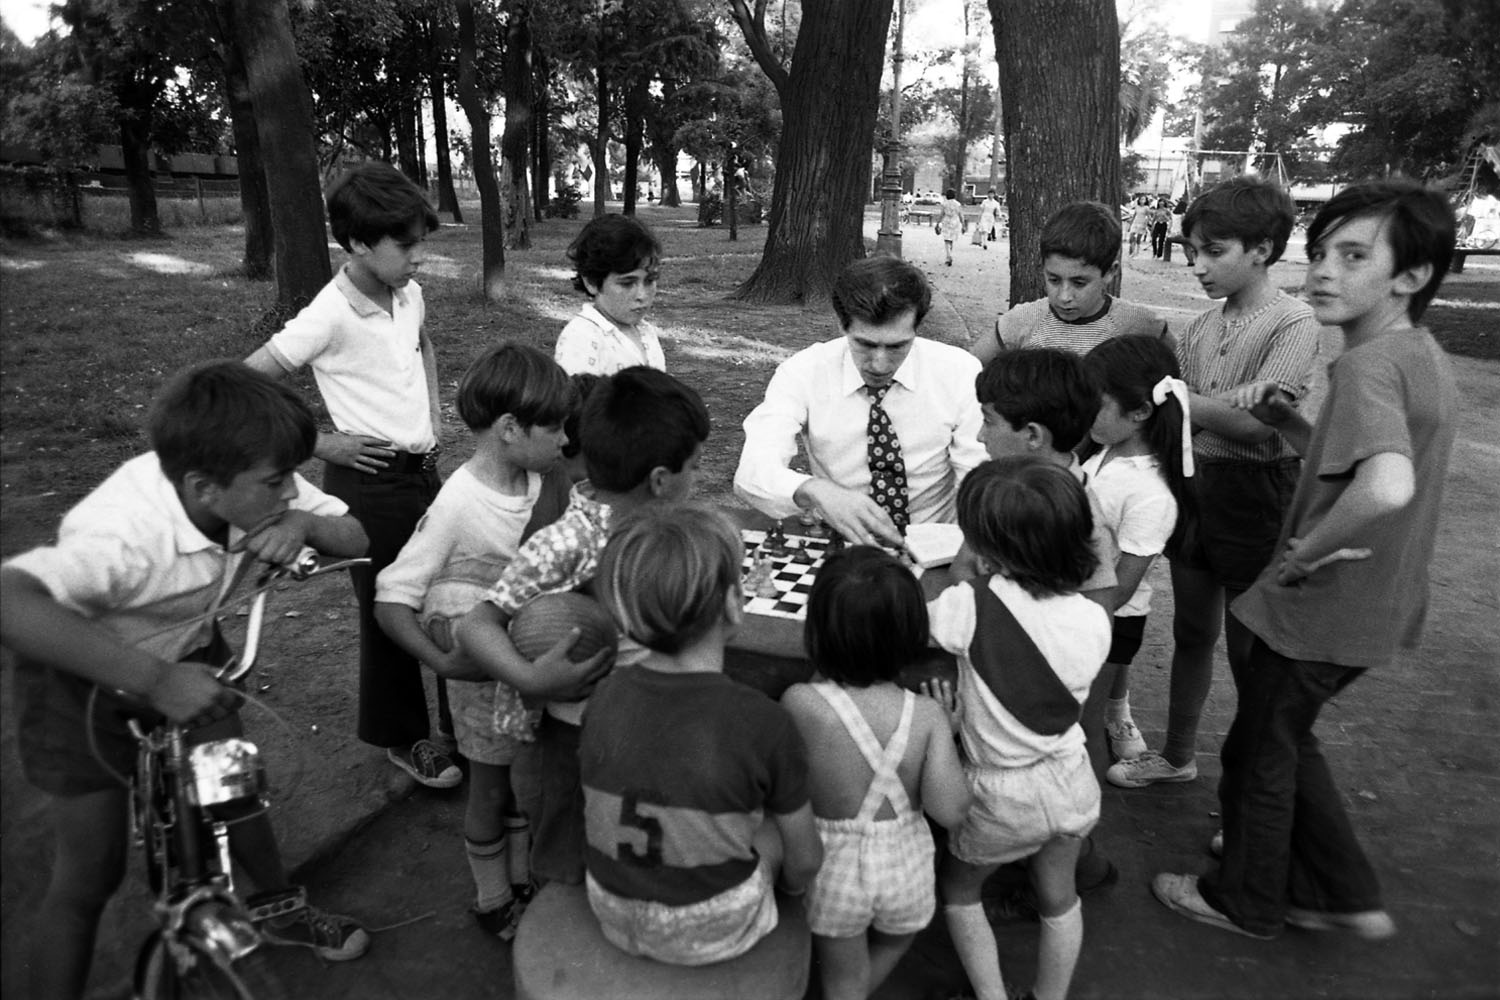 Playing chess in a Buenos Aires Park, 1971